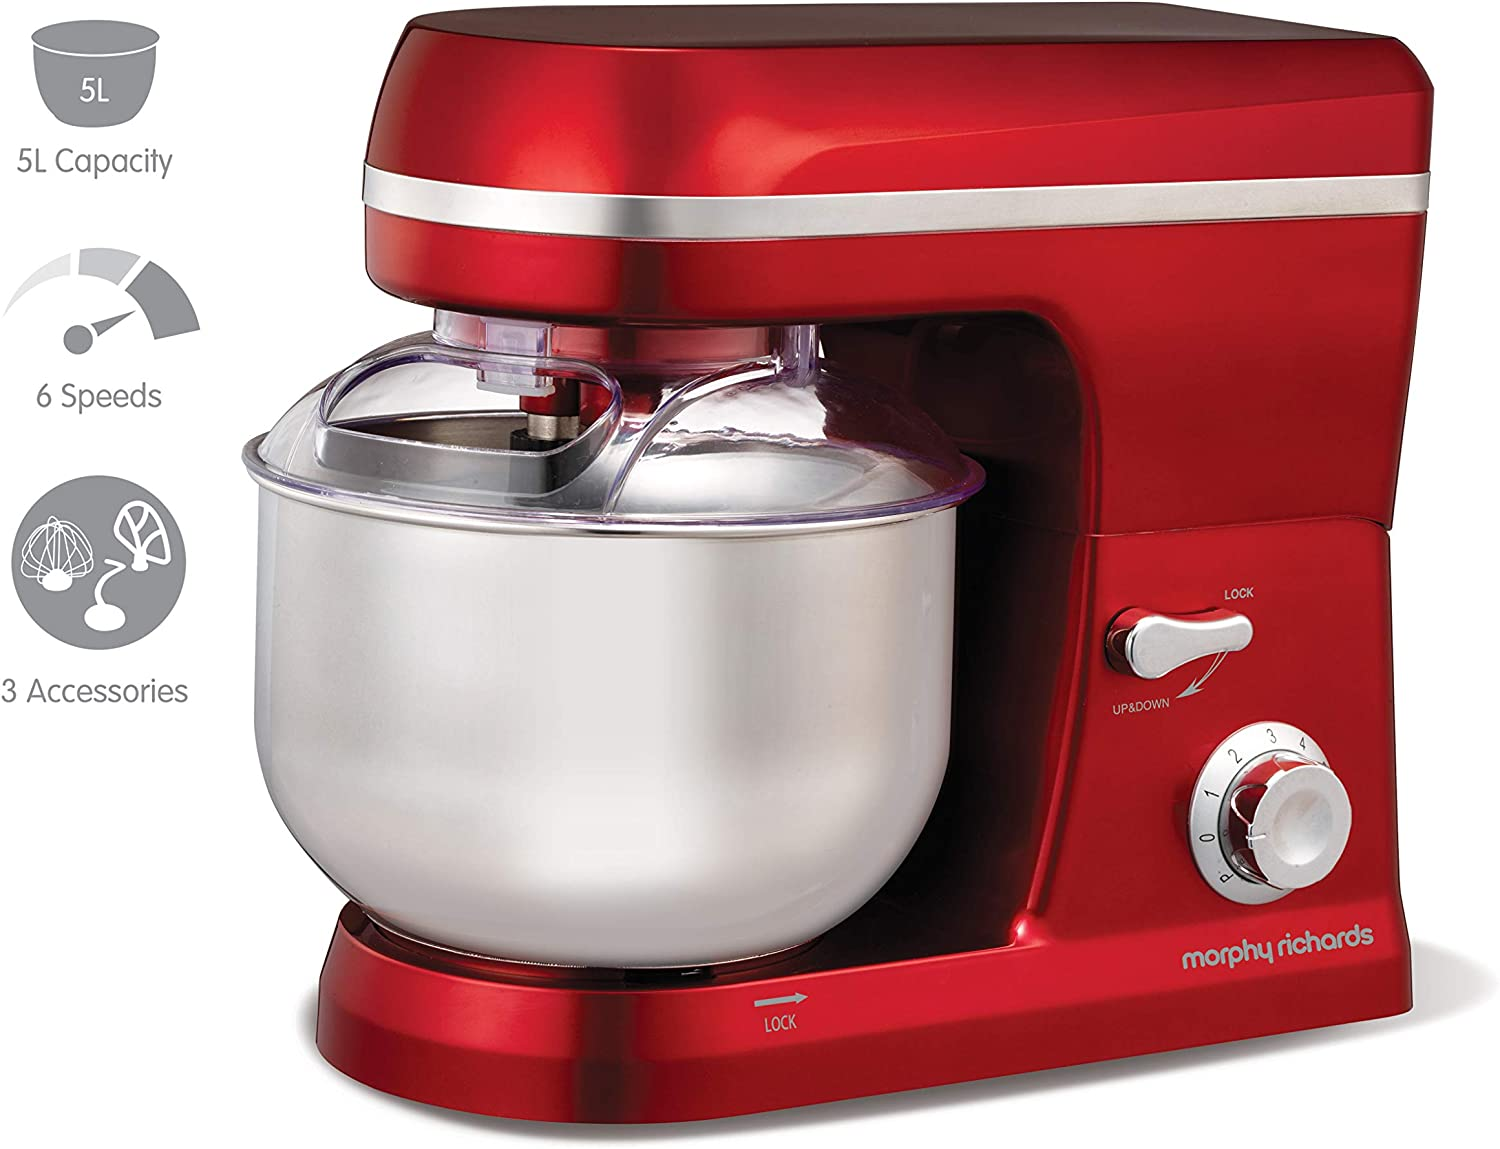 Morphy Richards Accents Red Stand Mixer